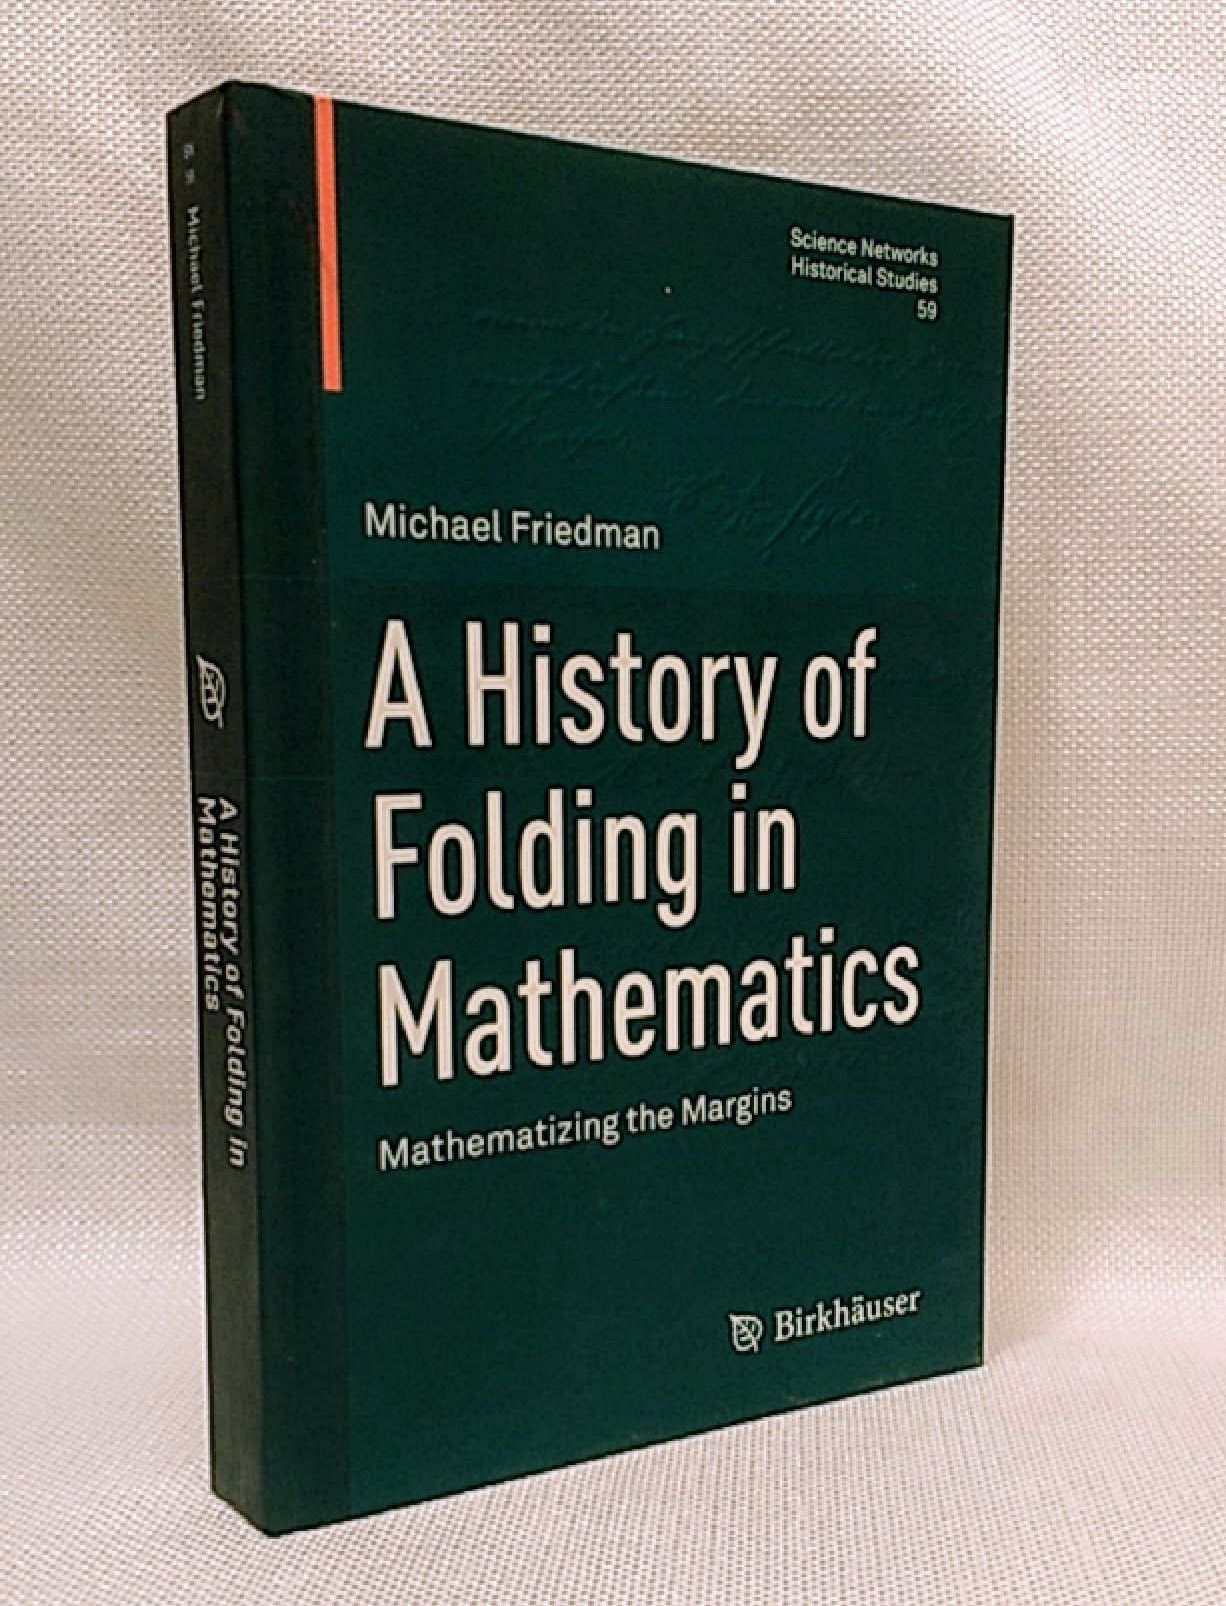 A History of Folding in Mathematics: Mathematizing the Margins (Science Networks. Historical Studies), Friedman, Michael